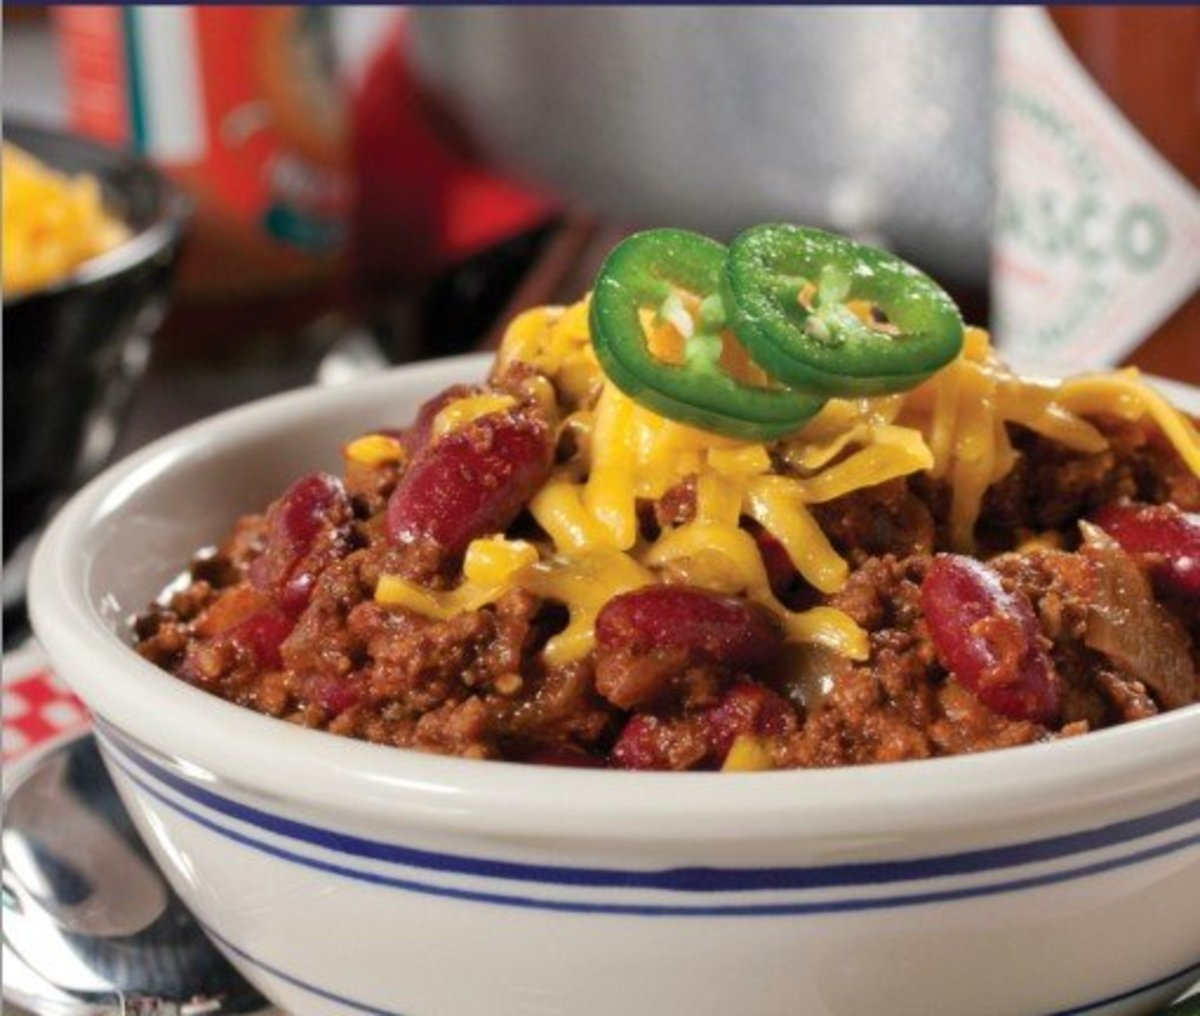 I make the best chili in the world. You can try but I don't think you'll find better chili than my recipes anywhere else. Let's make some.